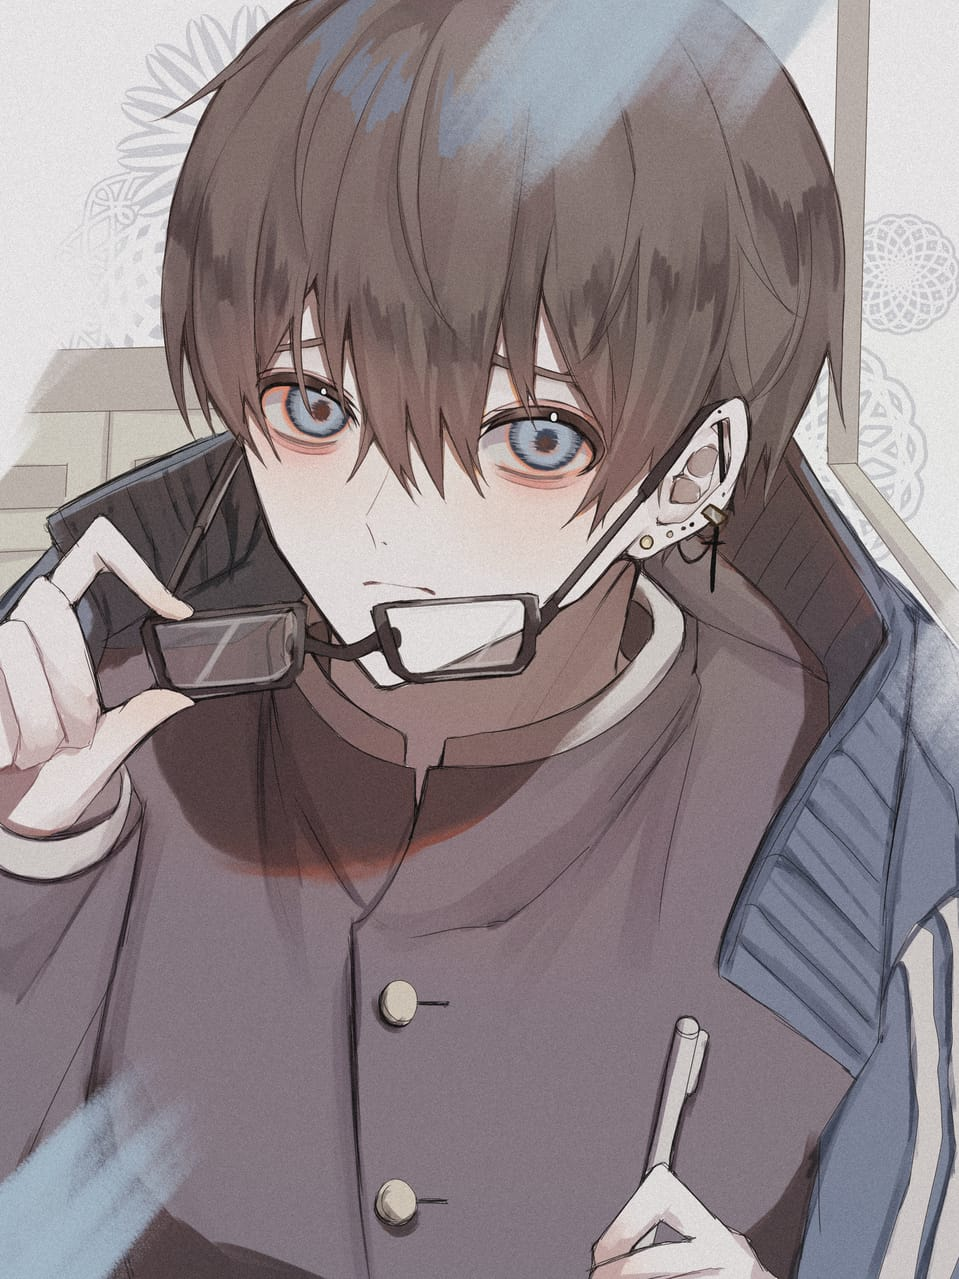 Illust of つぶ original 黒髪 piercing 学ラン boy glasses Medibang oc